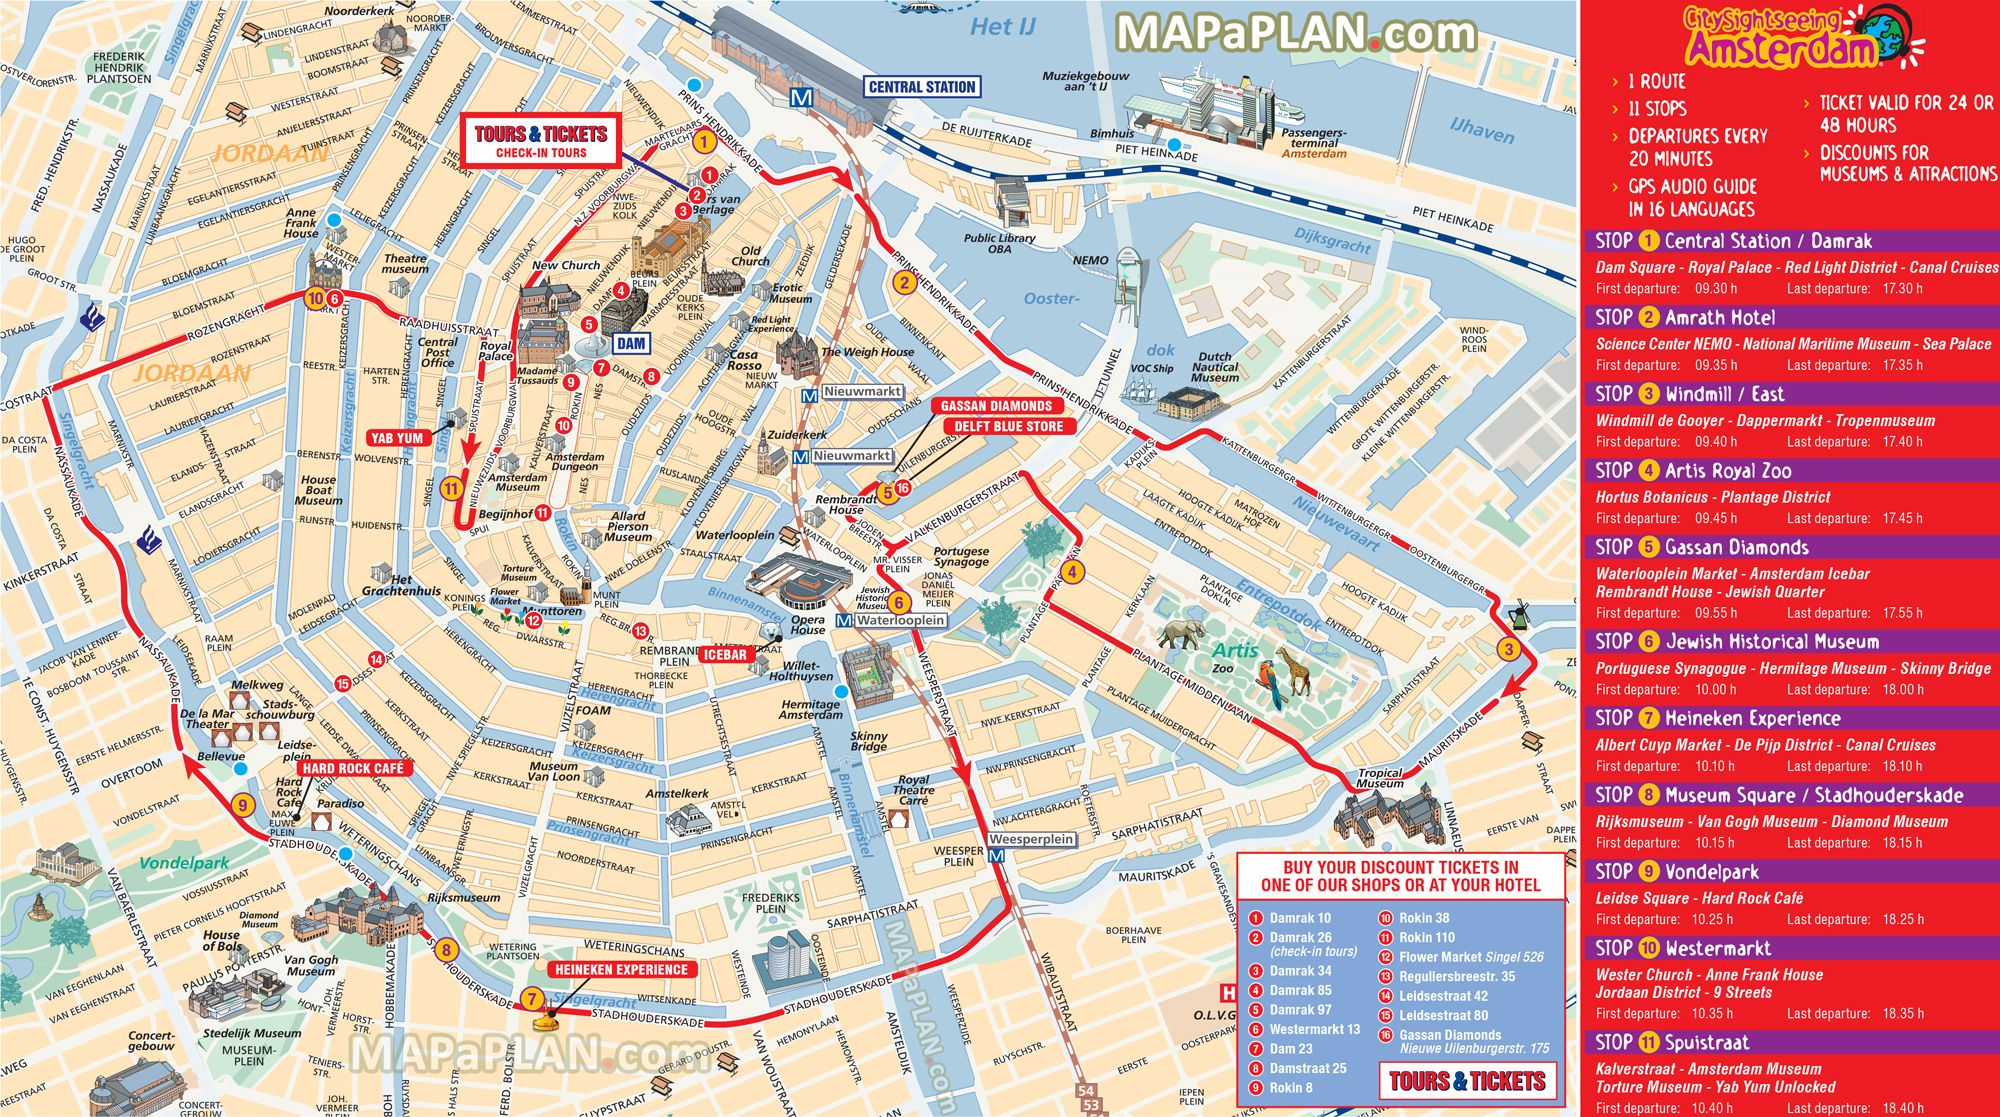 City Sightseeing Hop On Hop Off Double Decker Open Top Bus Tour - Amsterdam night bus map